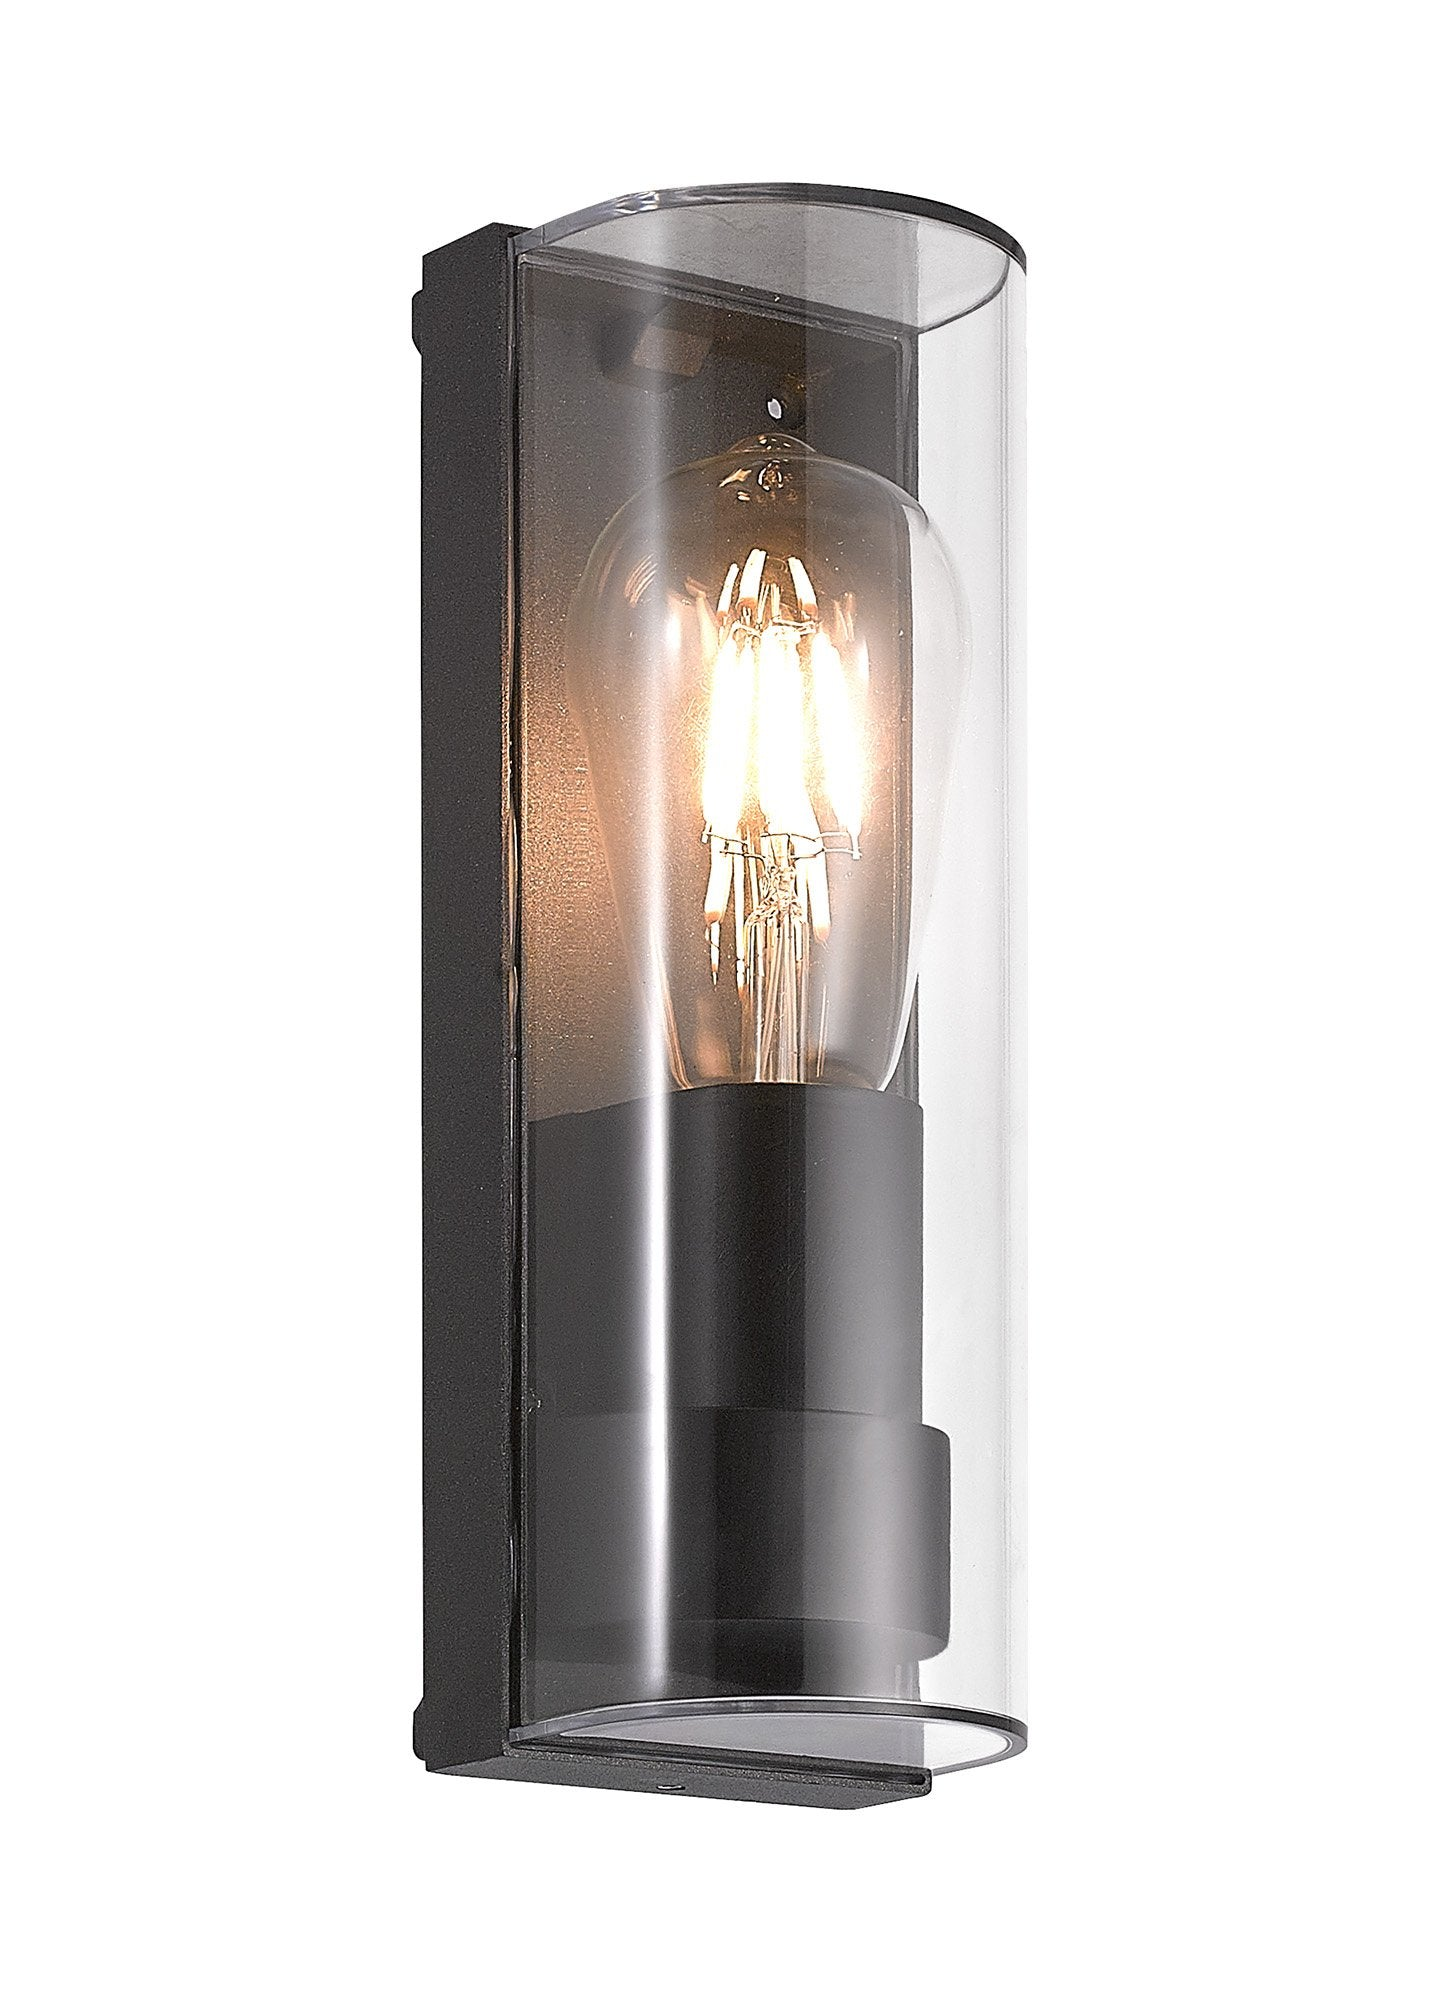 HOURGLASS Wall Lamp Curved, 1 x E27, IP65, Anthracite, 2yrs Warranty (2LT334A)